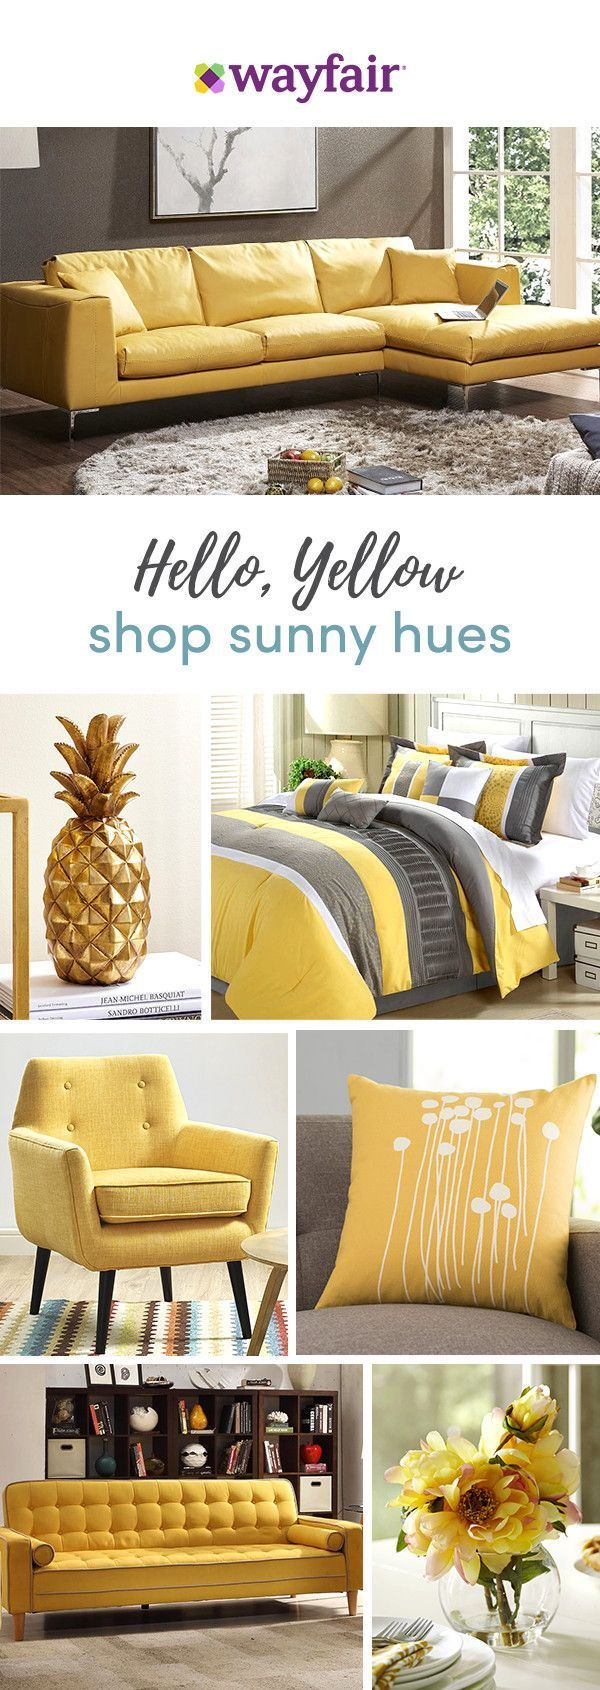 Want a bright and bold accent or a color-pop on the tabletop? From everyday essentials to festive furnishings and more, Wayfair has thousands of home must-haves in shades that suit every style, space, and budget. Visit Wayfair to get exclusive deals at up to 70% OFF, plus FREE shipping on all orders over $49. Here's to staying gold! Sign up and shop now.